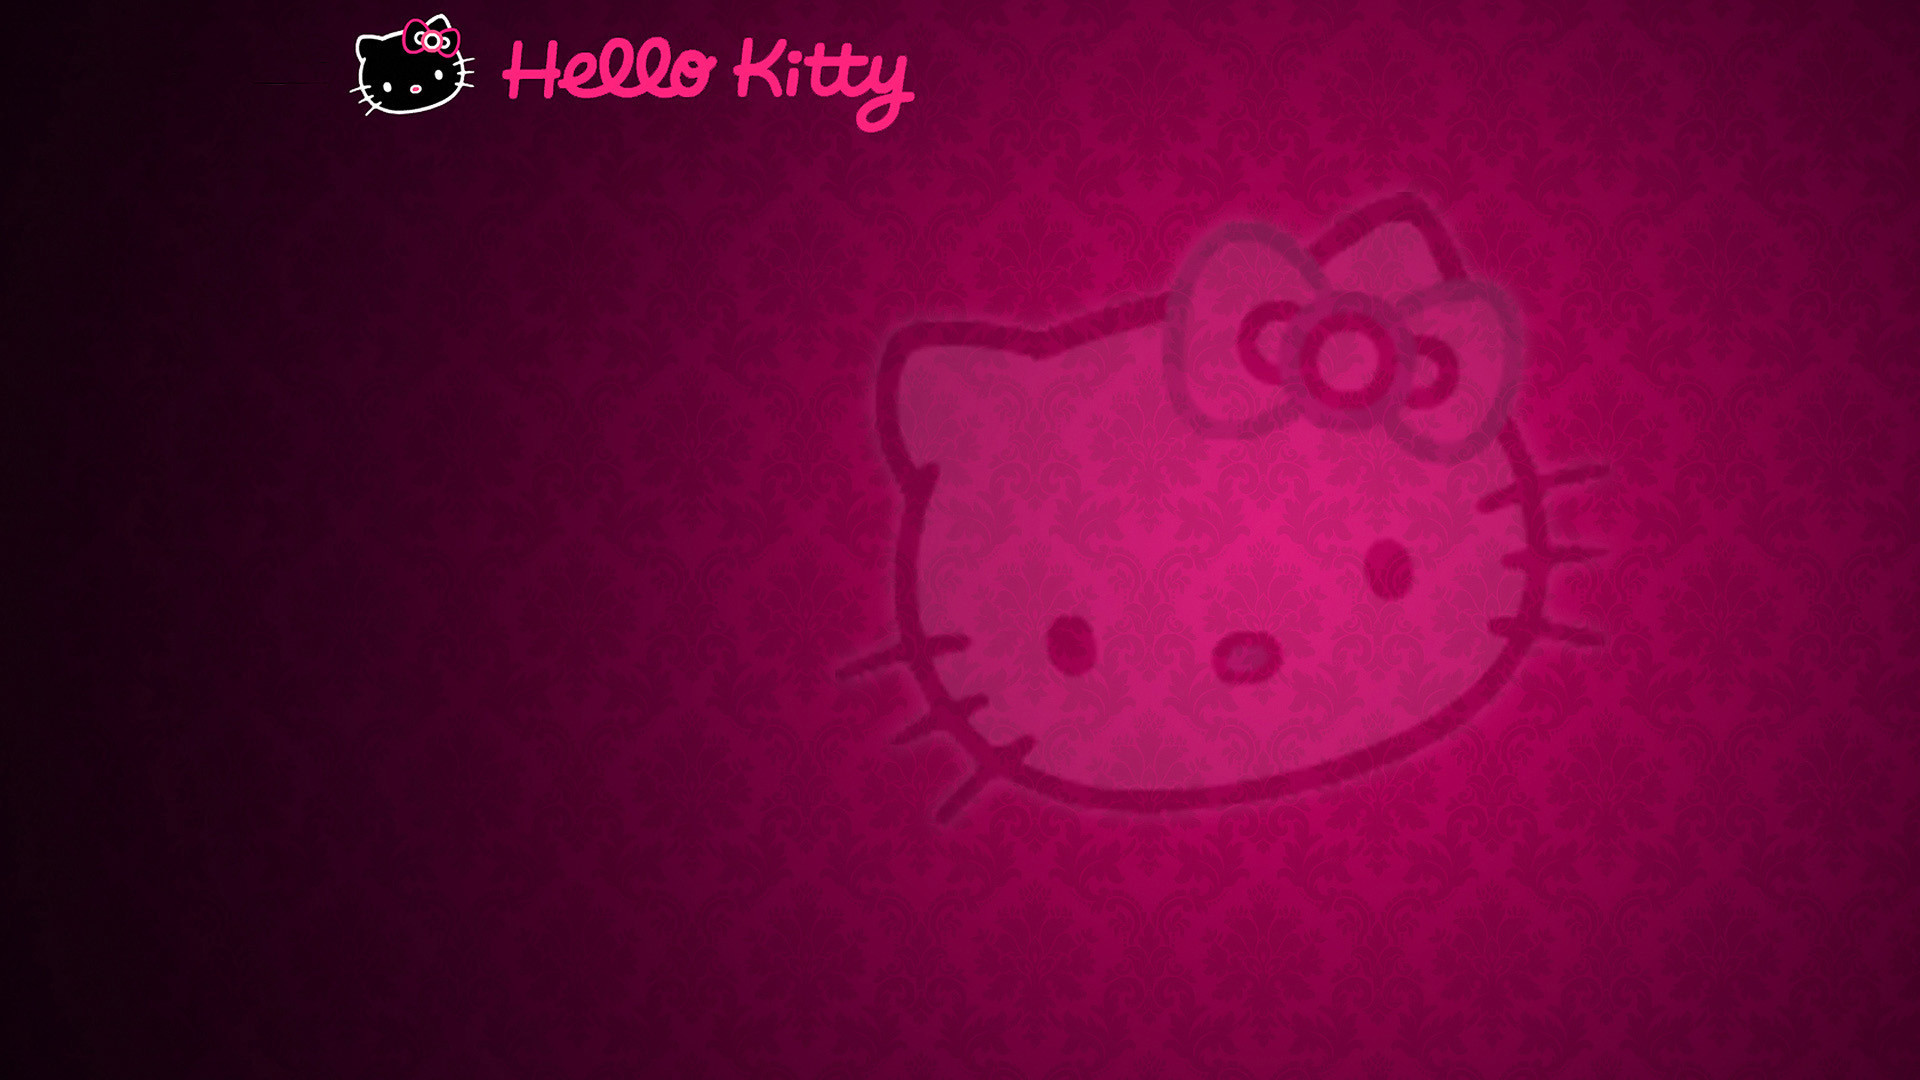 1920x1080 1080x1920 hello kitty wallpaper iphone